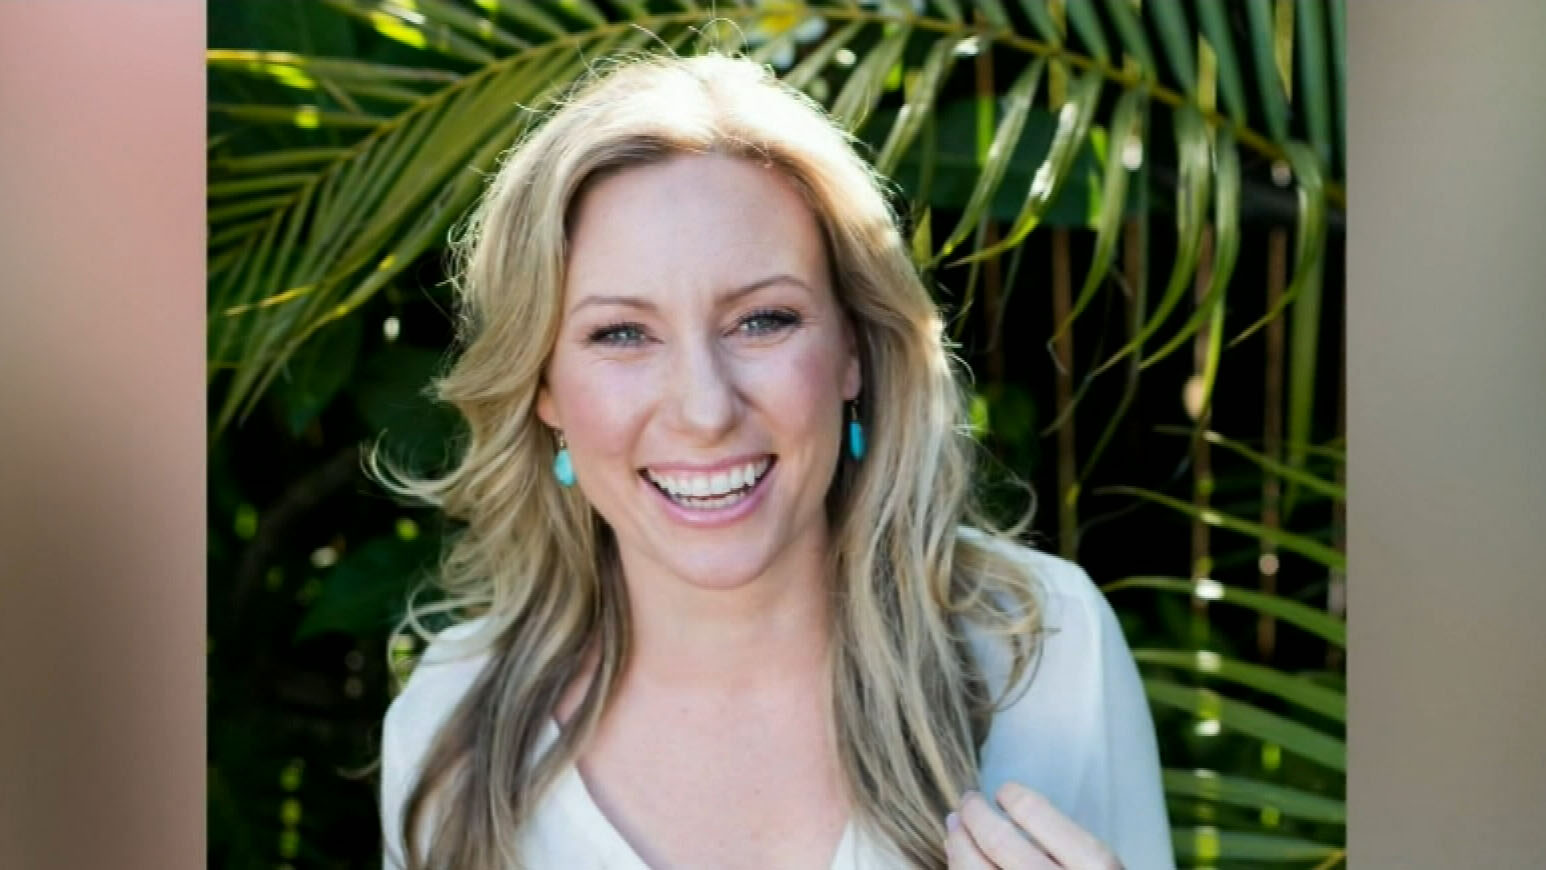 US officer charged over Justine Damond's death